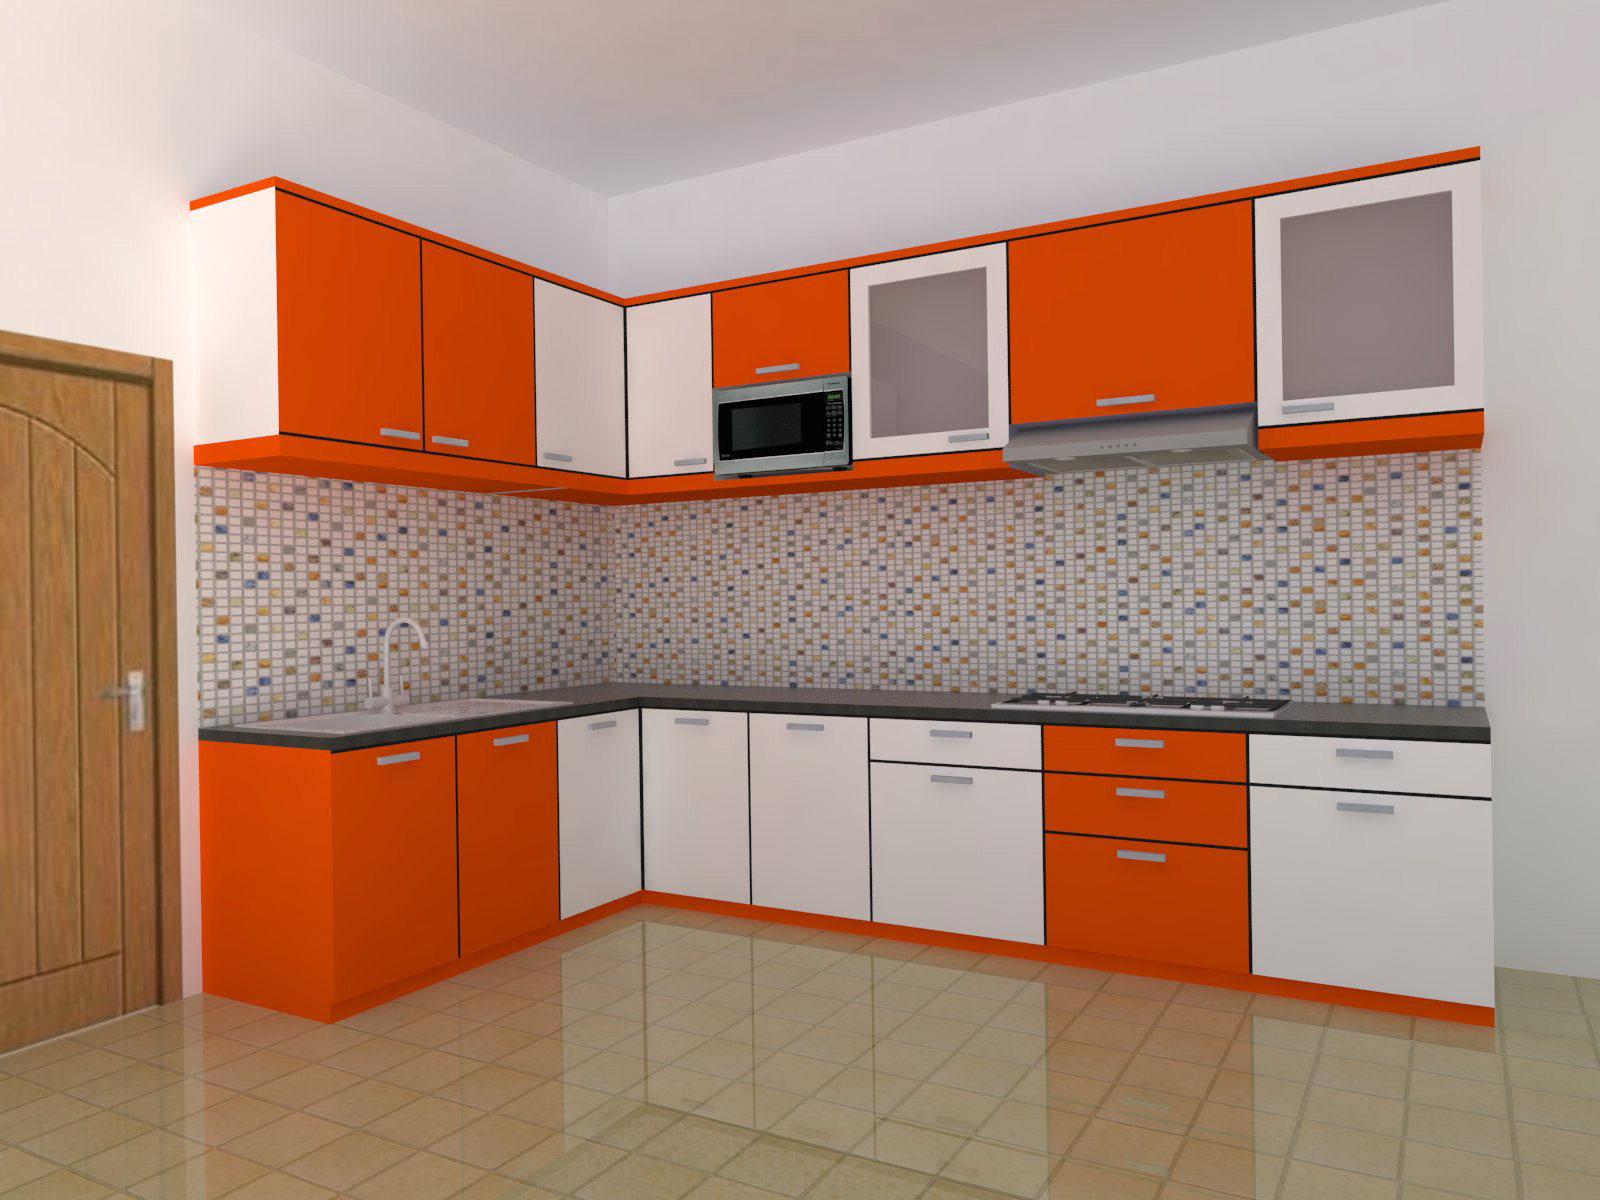 Kitchen set minimalis bergaransi azzahra furniture for Kitchen minimalis